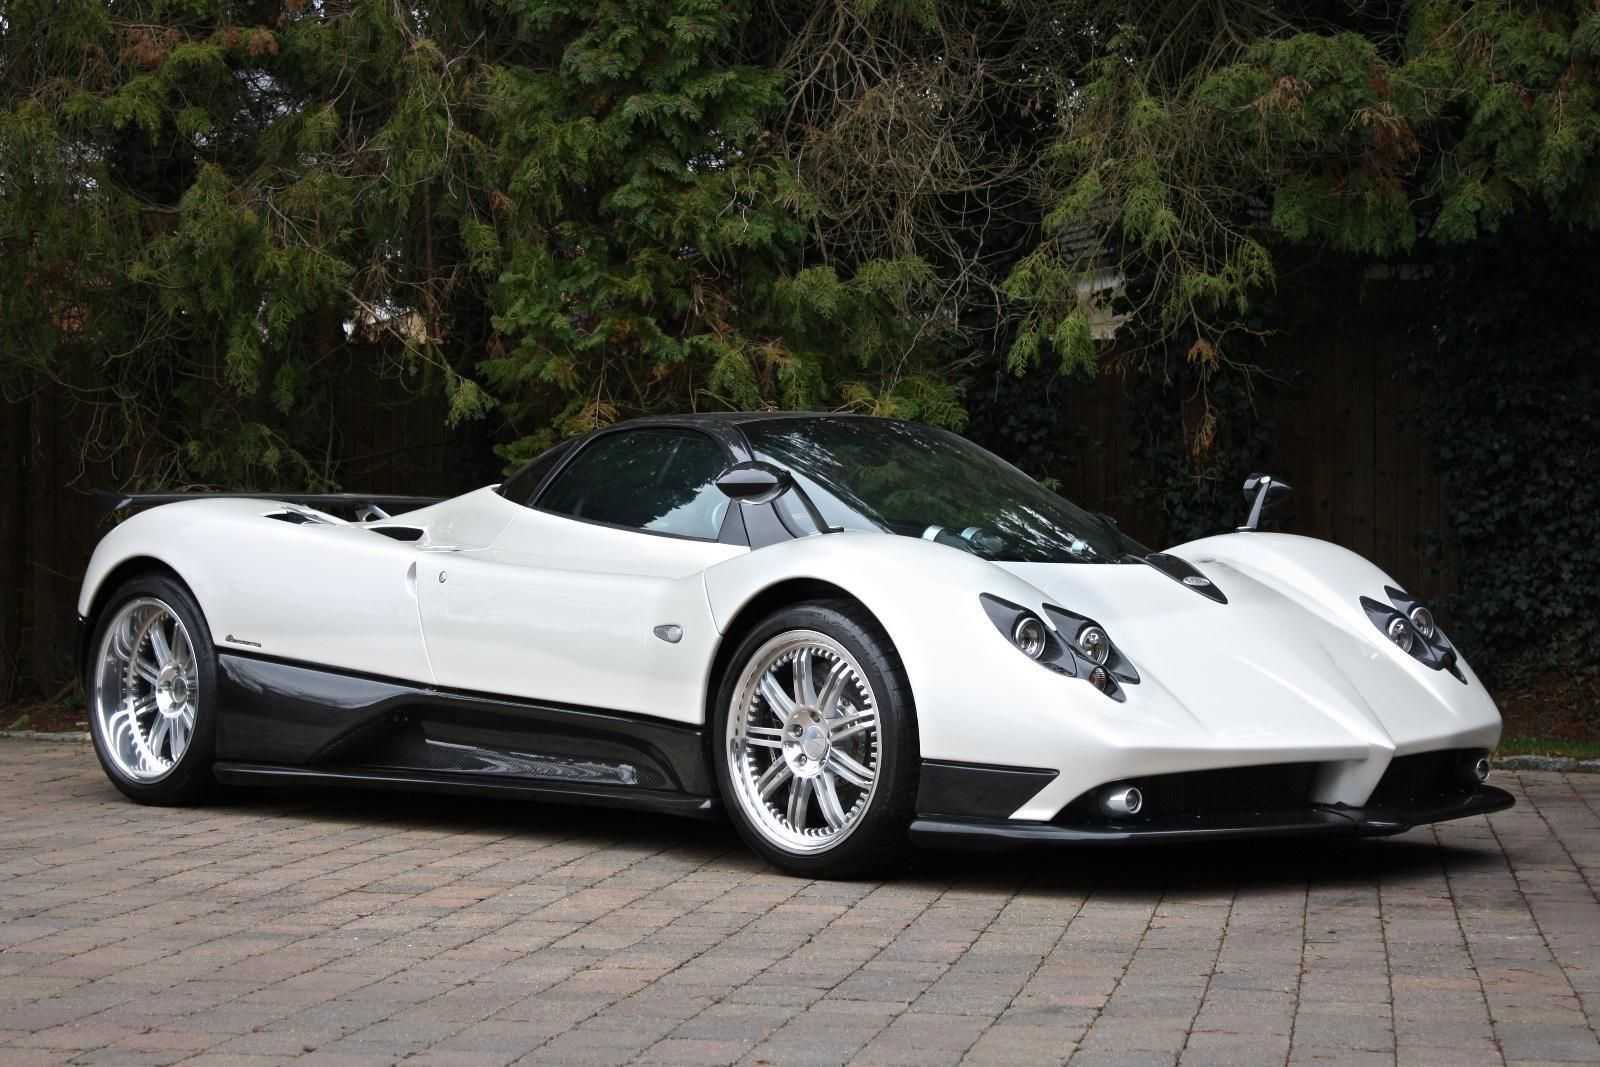 Pagani Zonda F Clubsport Coupe Amg Powered Manual Supercar